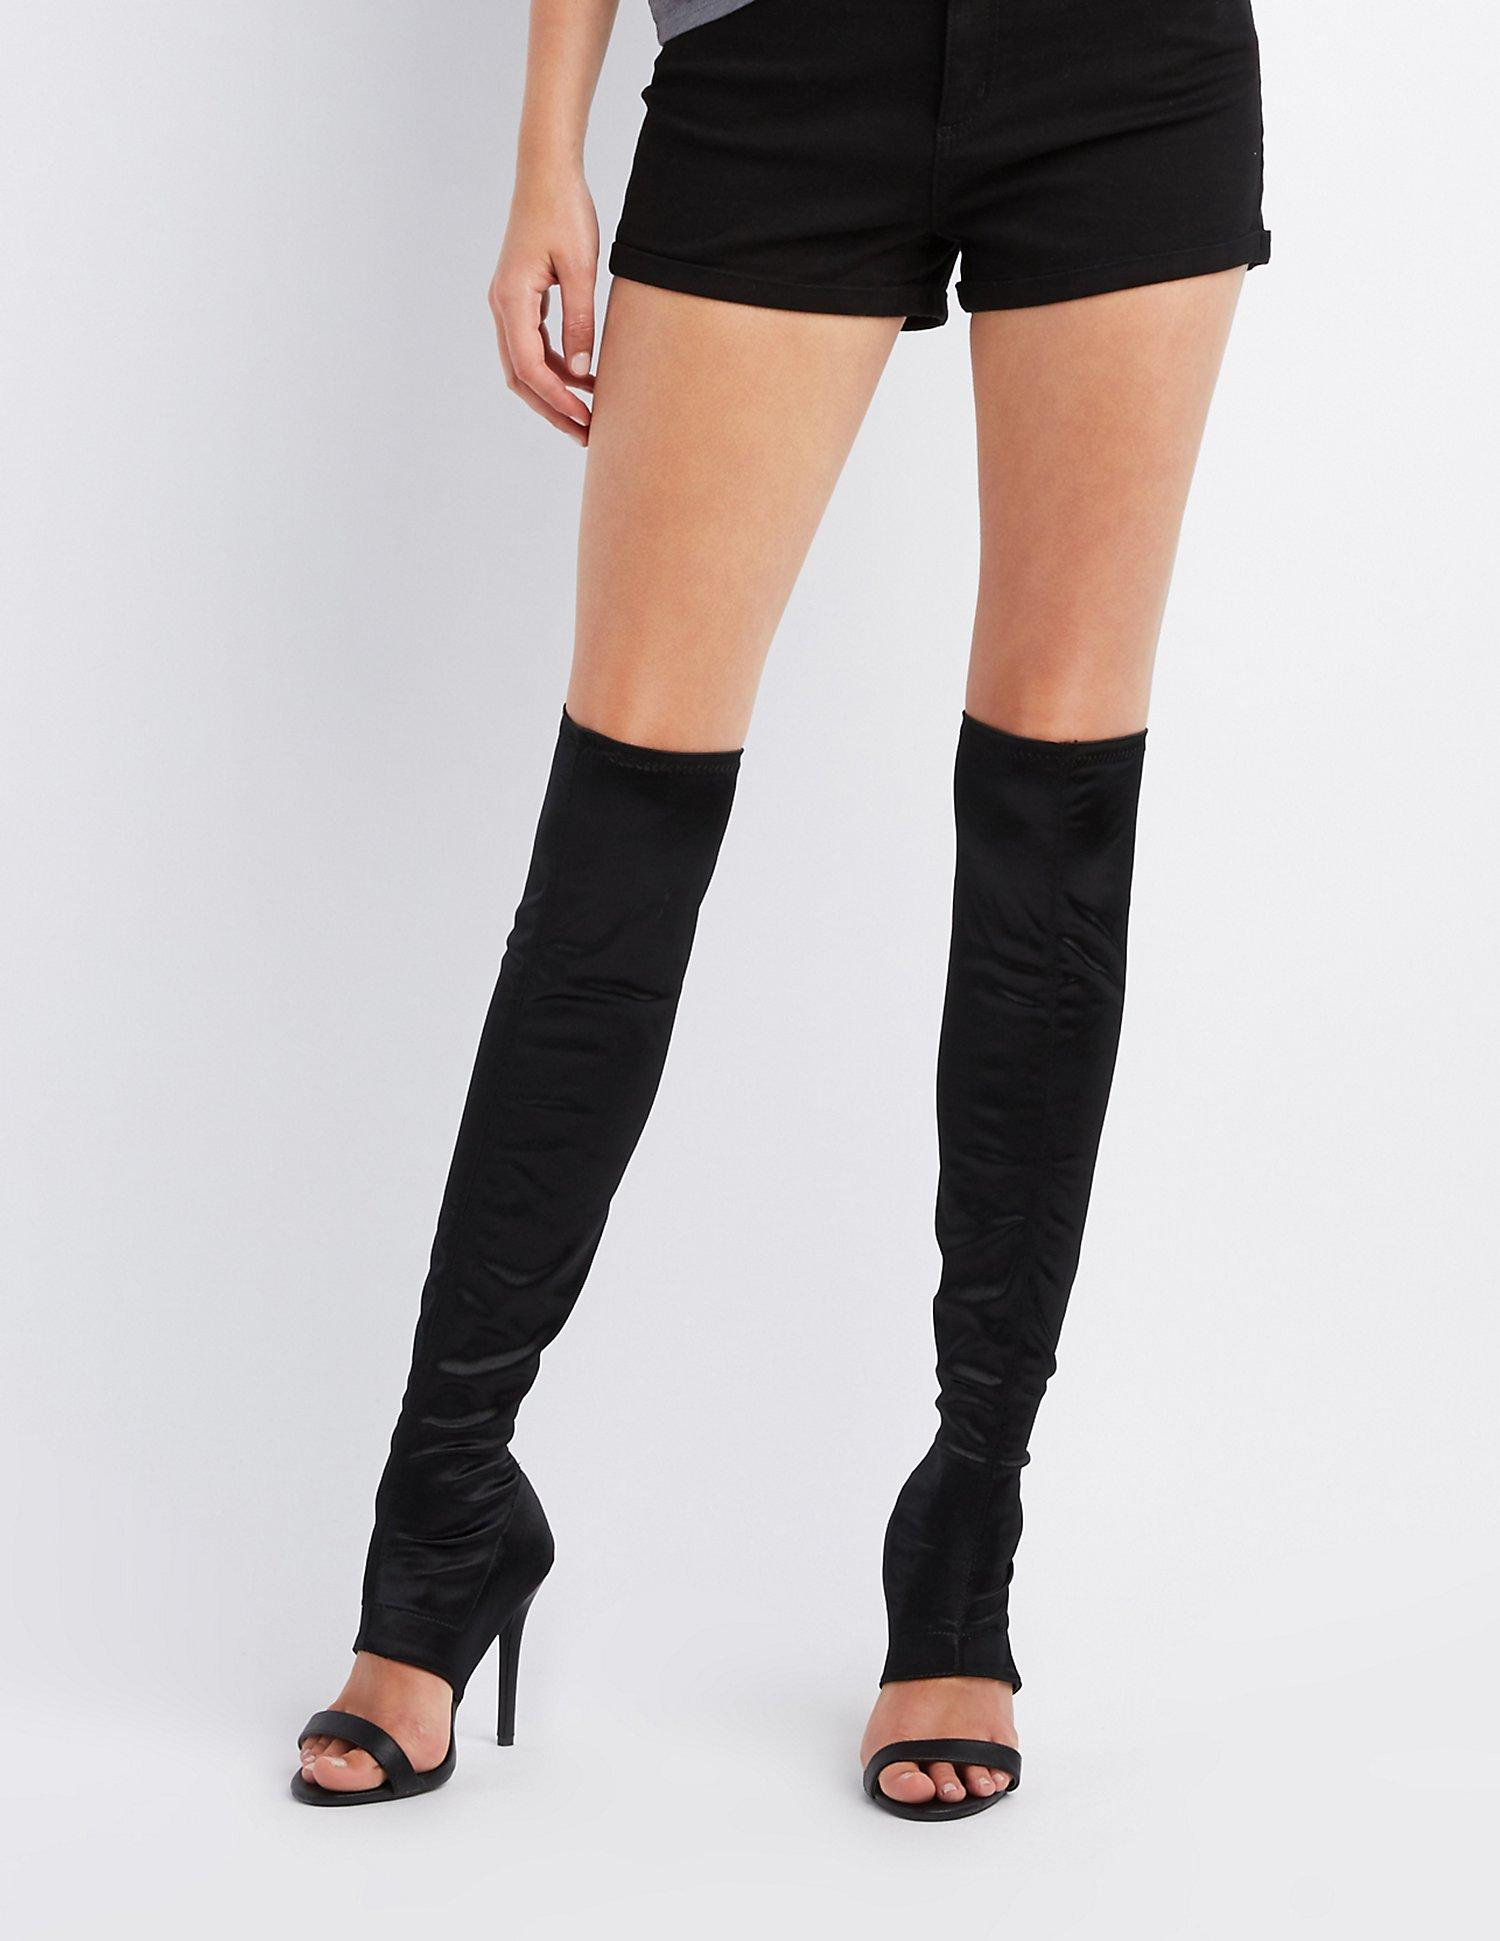 9e4dd80e06eb Lyst - Charlotte Russe Qupid Cut-out Over-the-knee Stiletto Boots in ...